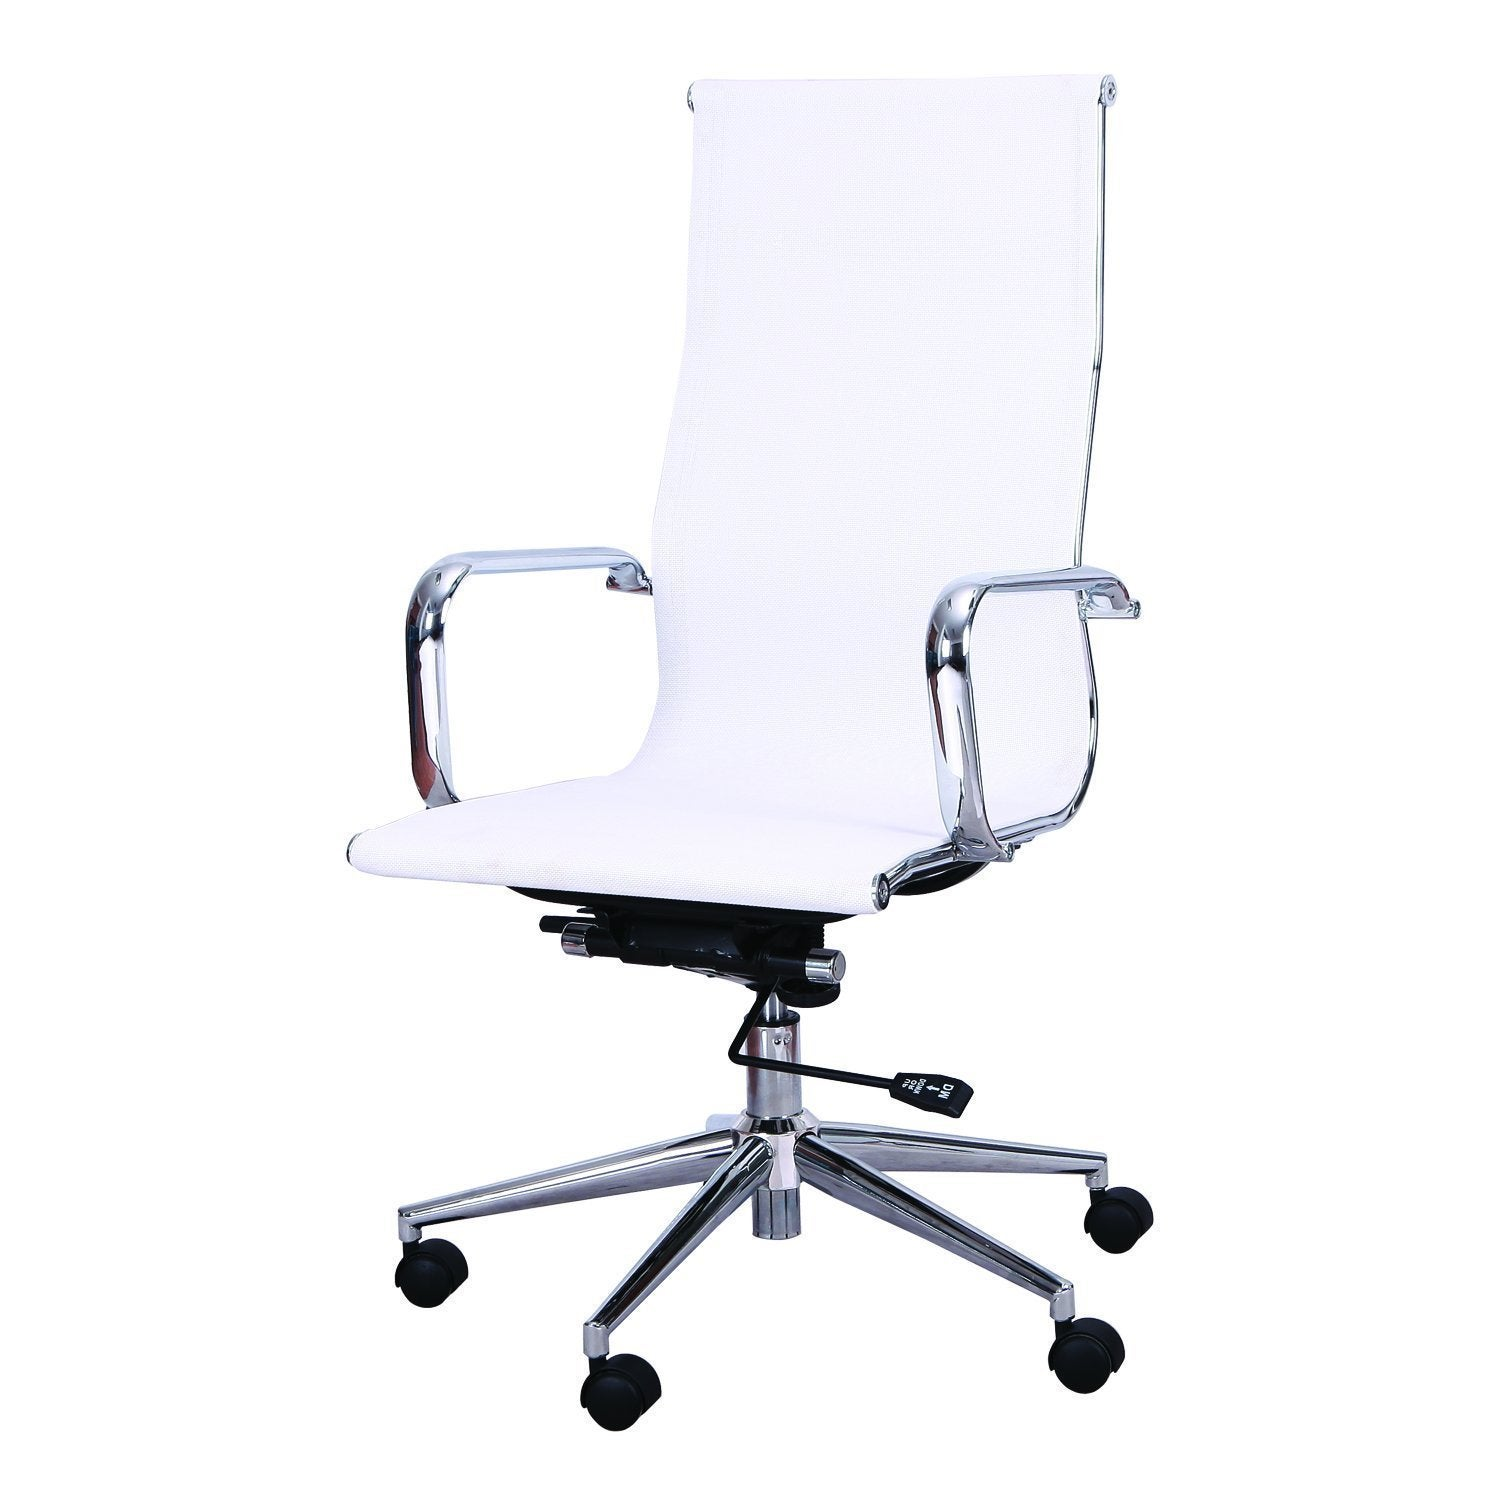 Superbe Adeco High Back Adjustable White Mesh Desk Chair   Free Shipping Today    Overstock   19159969